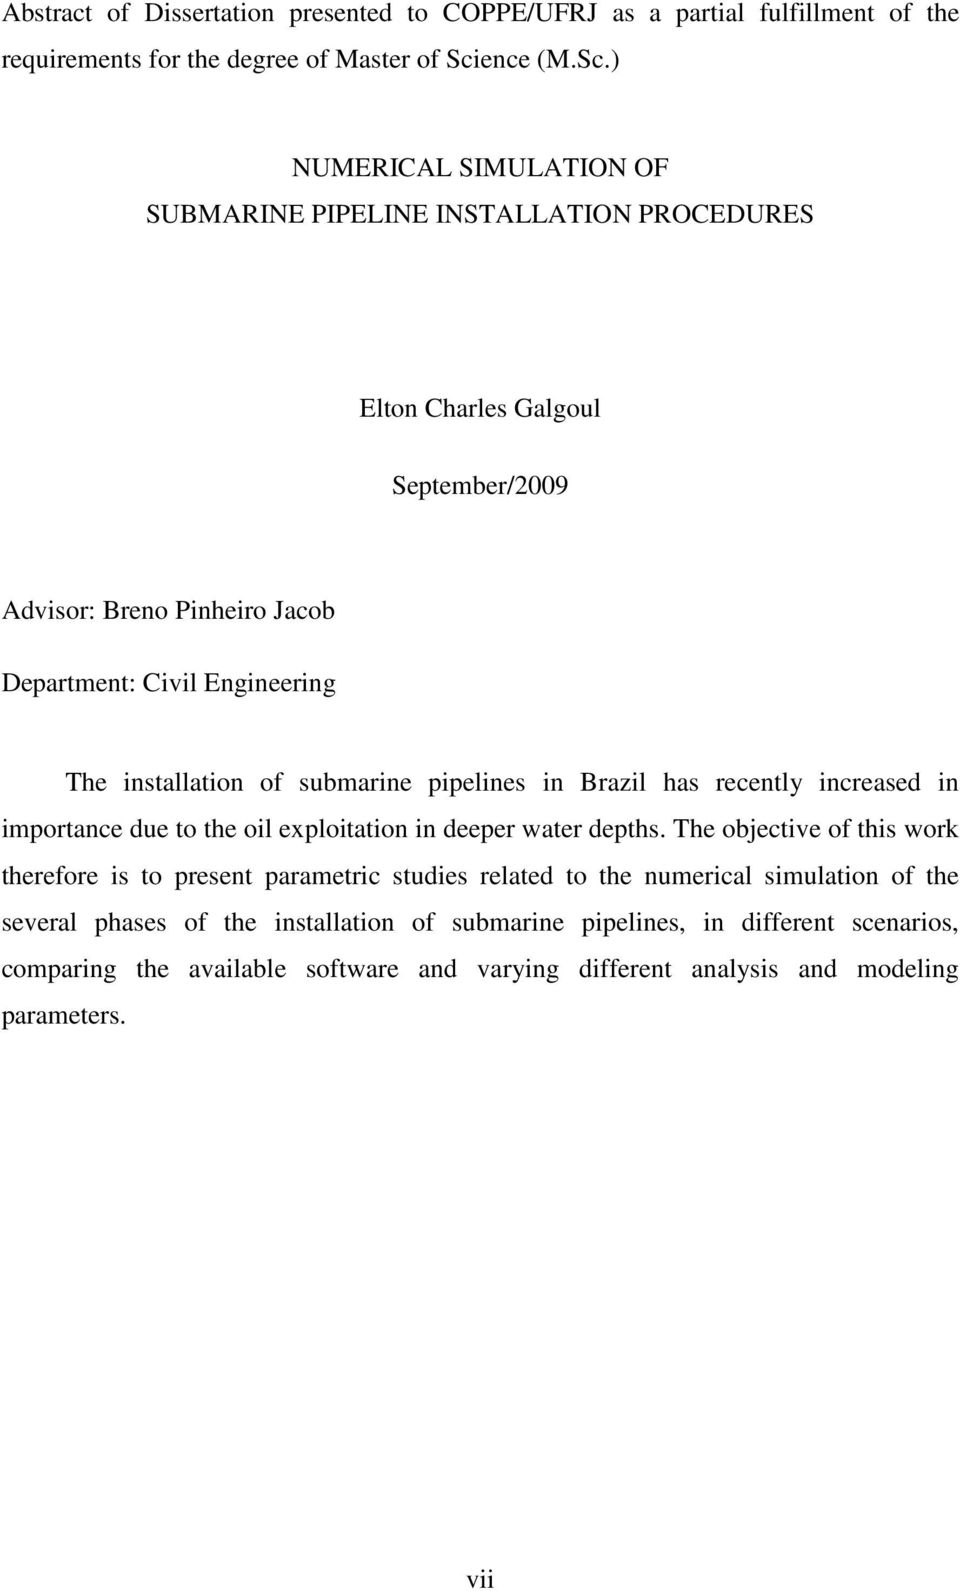 ) NUMERICAL SIMULATION OF SUBMARINE PIPELINE INSTALLATION PROCEDURES Elton Charles Galgoul September/2009 Advisor: Breno Pinheiro Jacob Department: Civil Engineering The installation